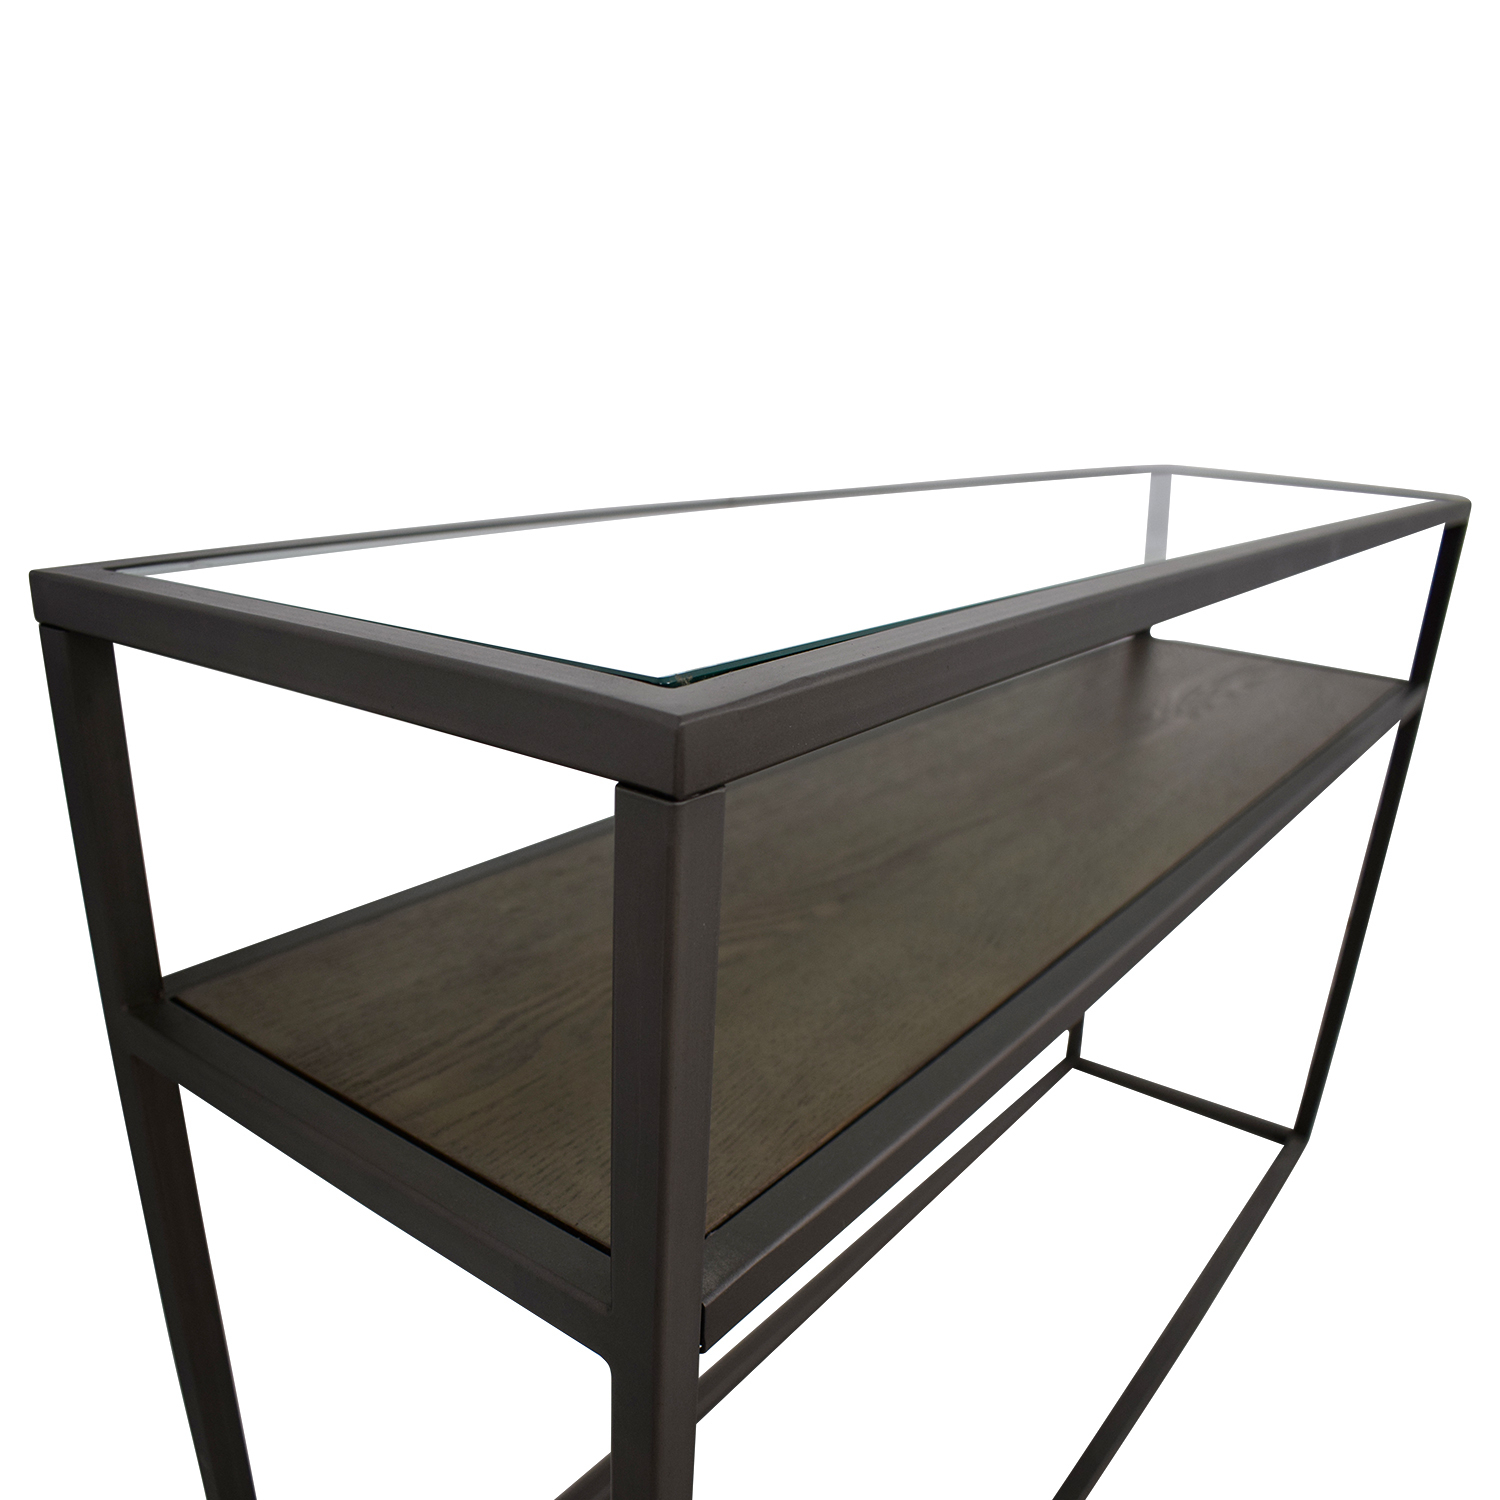 Crate & Barrel Switch Glass Wood And Metal Console Table throughout Switch Console Tables (Image 5 of 30)